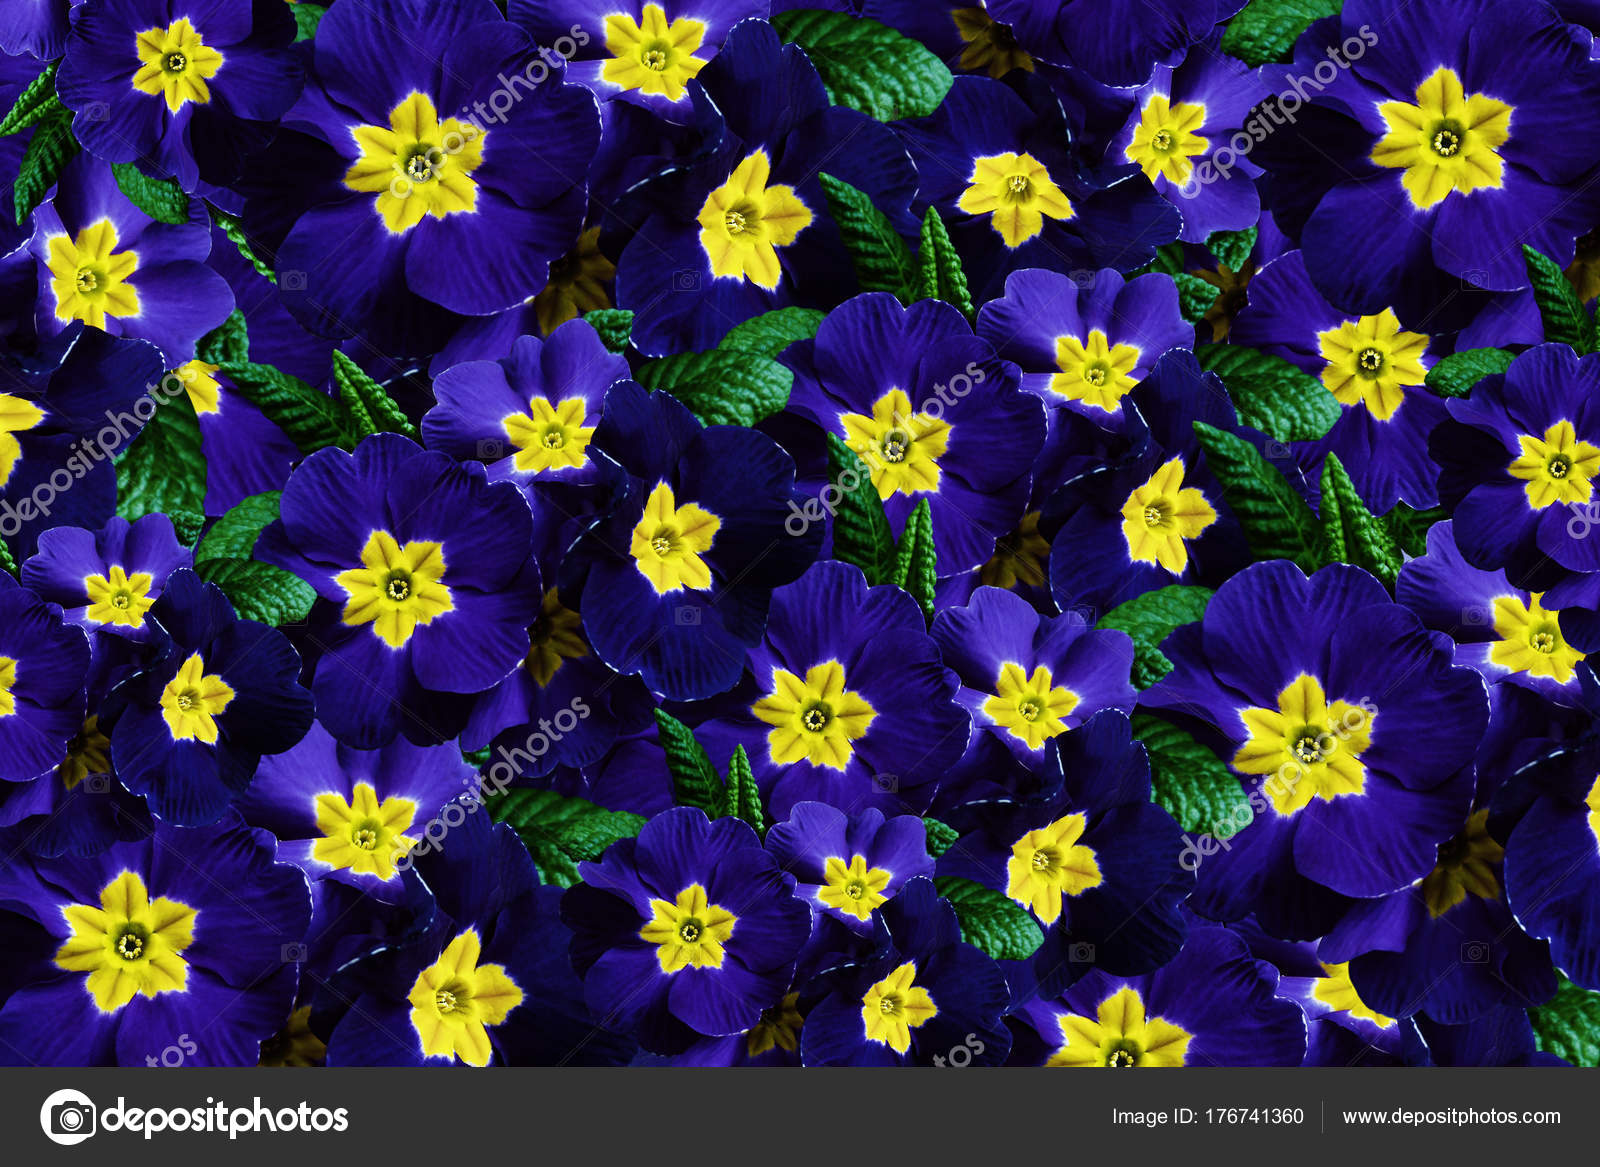 Flowers Background Flowers Blue Violets Much Violets Yellow Center